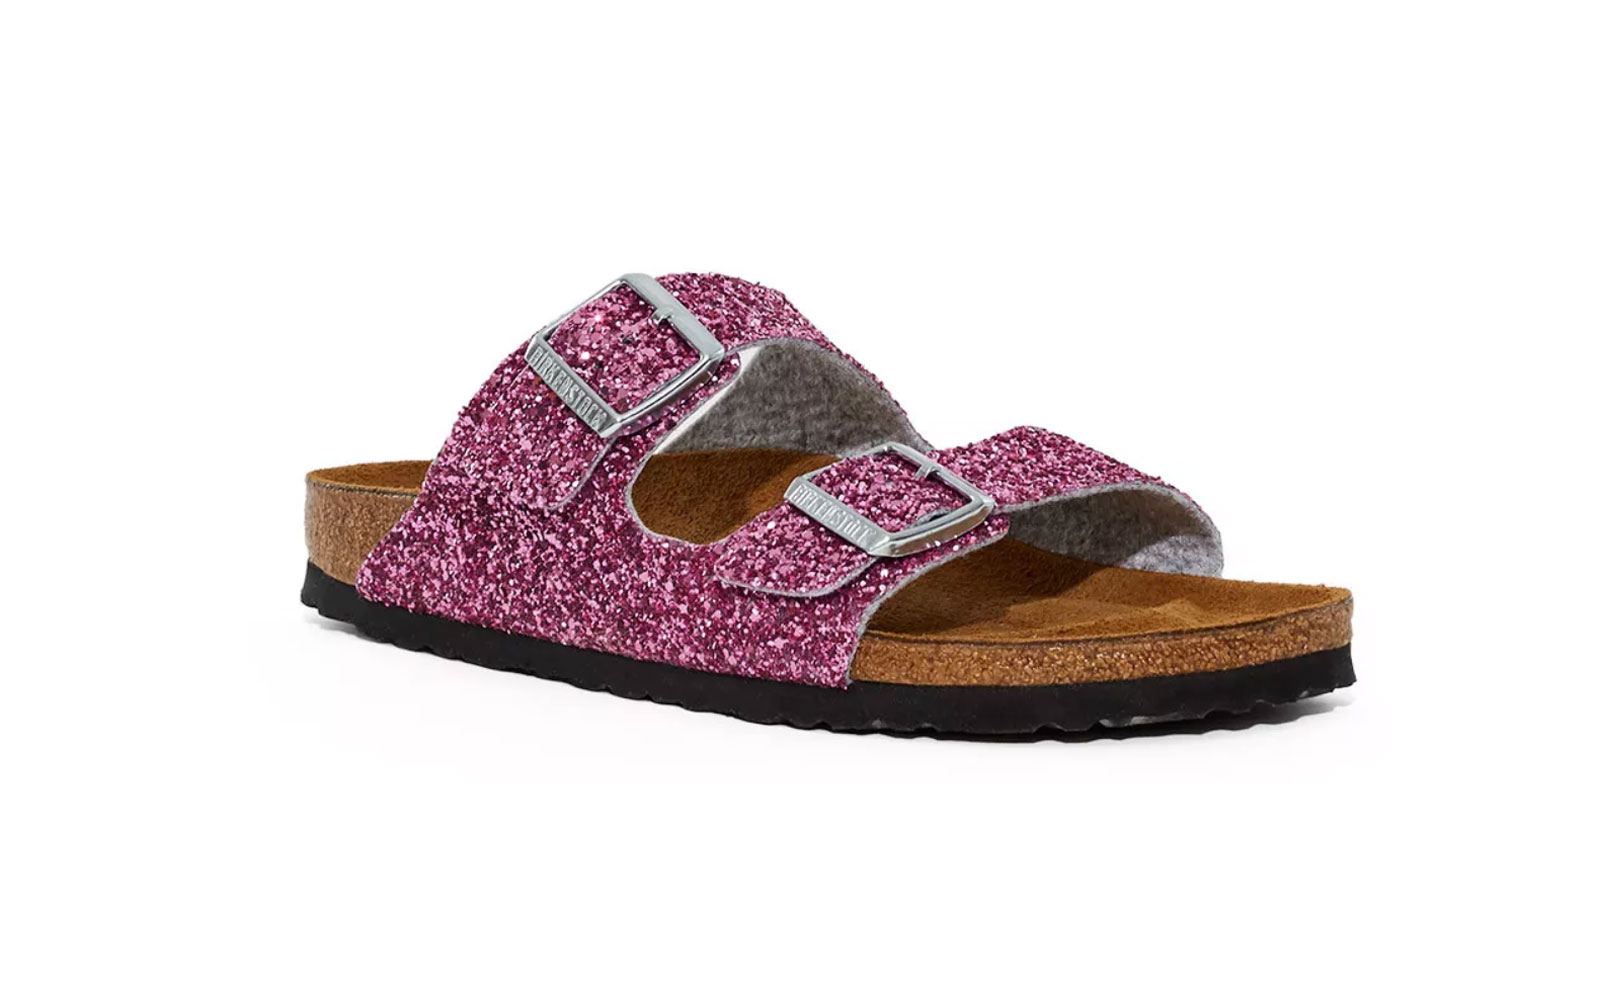 fancy birkenstocks summer sandals